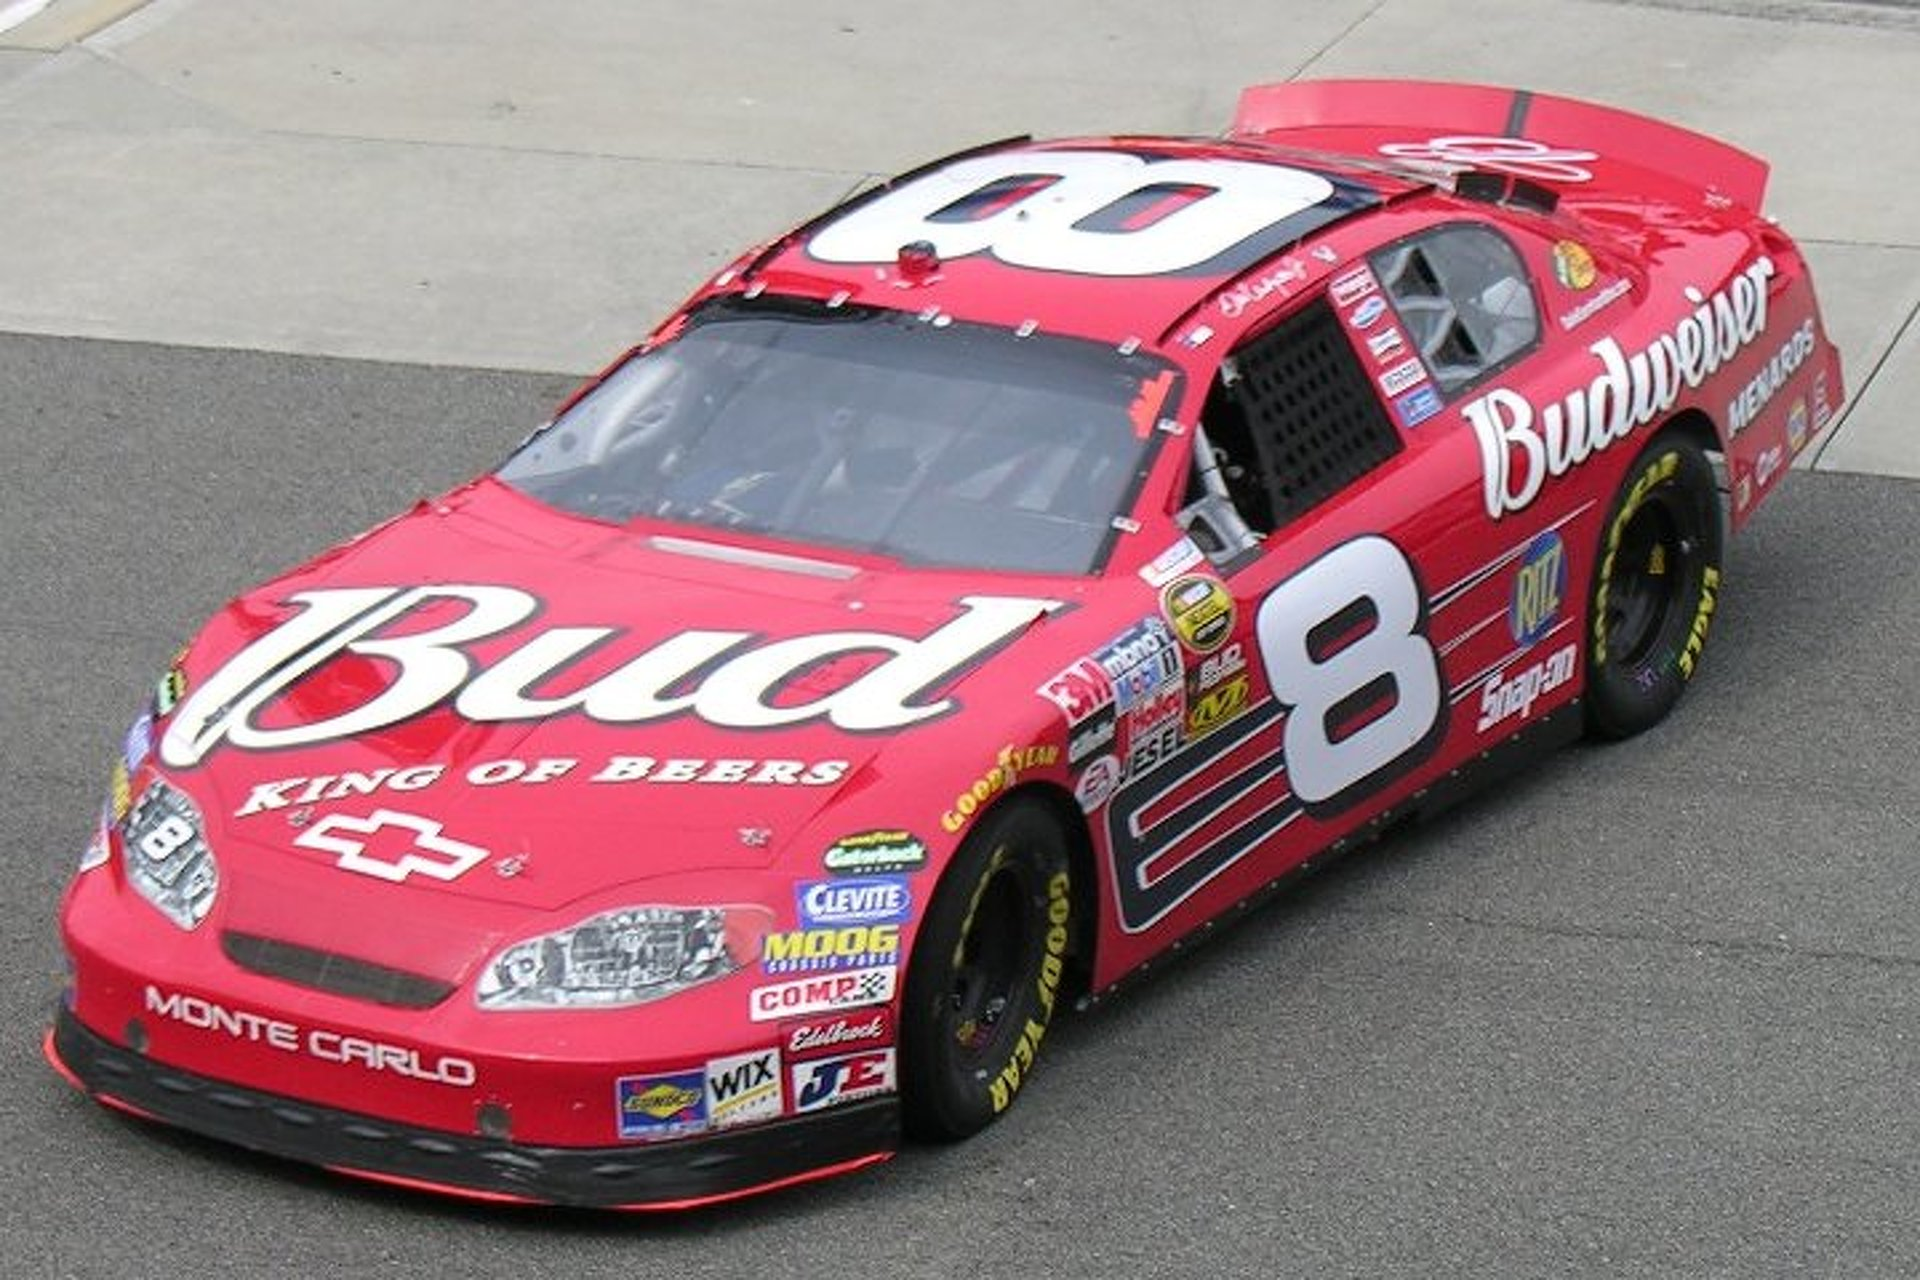 5 Fantastically Patriotic Paint Racing Schemes